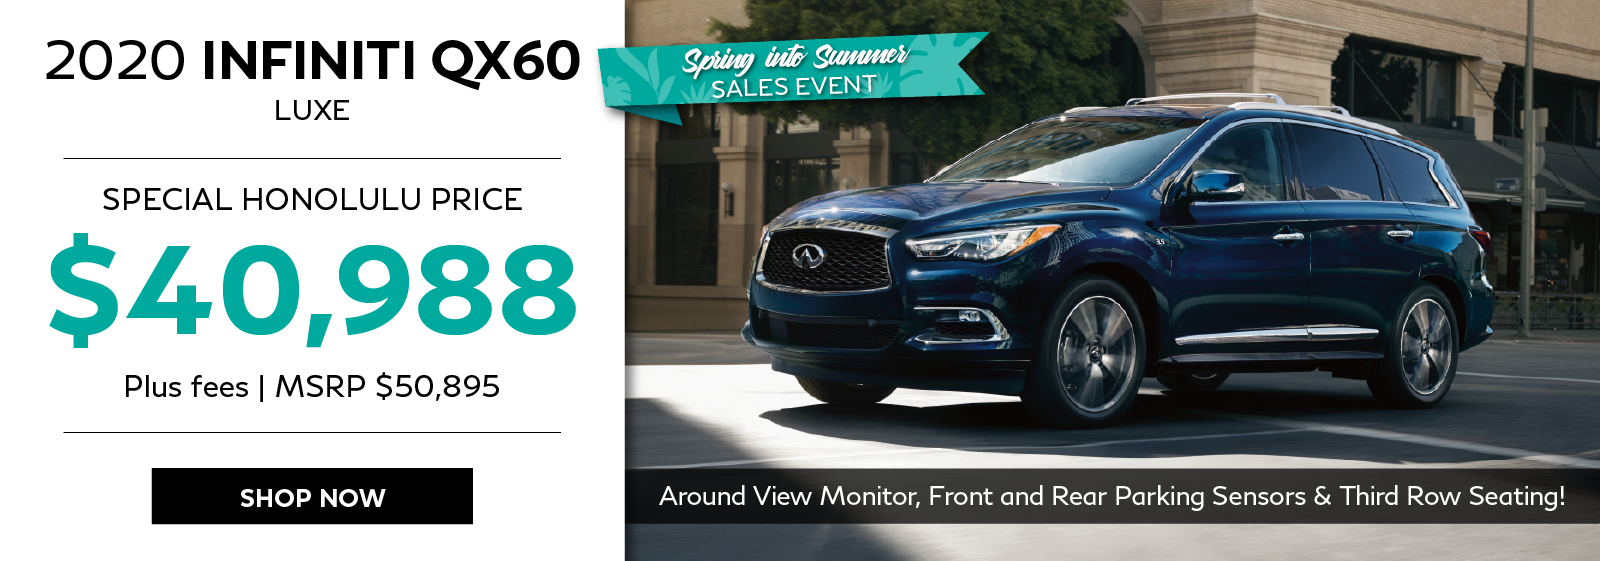 Spring Into Summer Sales Event. 2020 QX60 special sale price offer. Click to shop now.